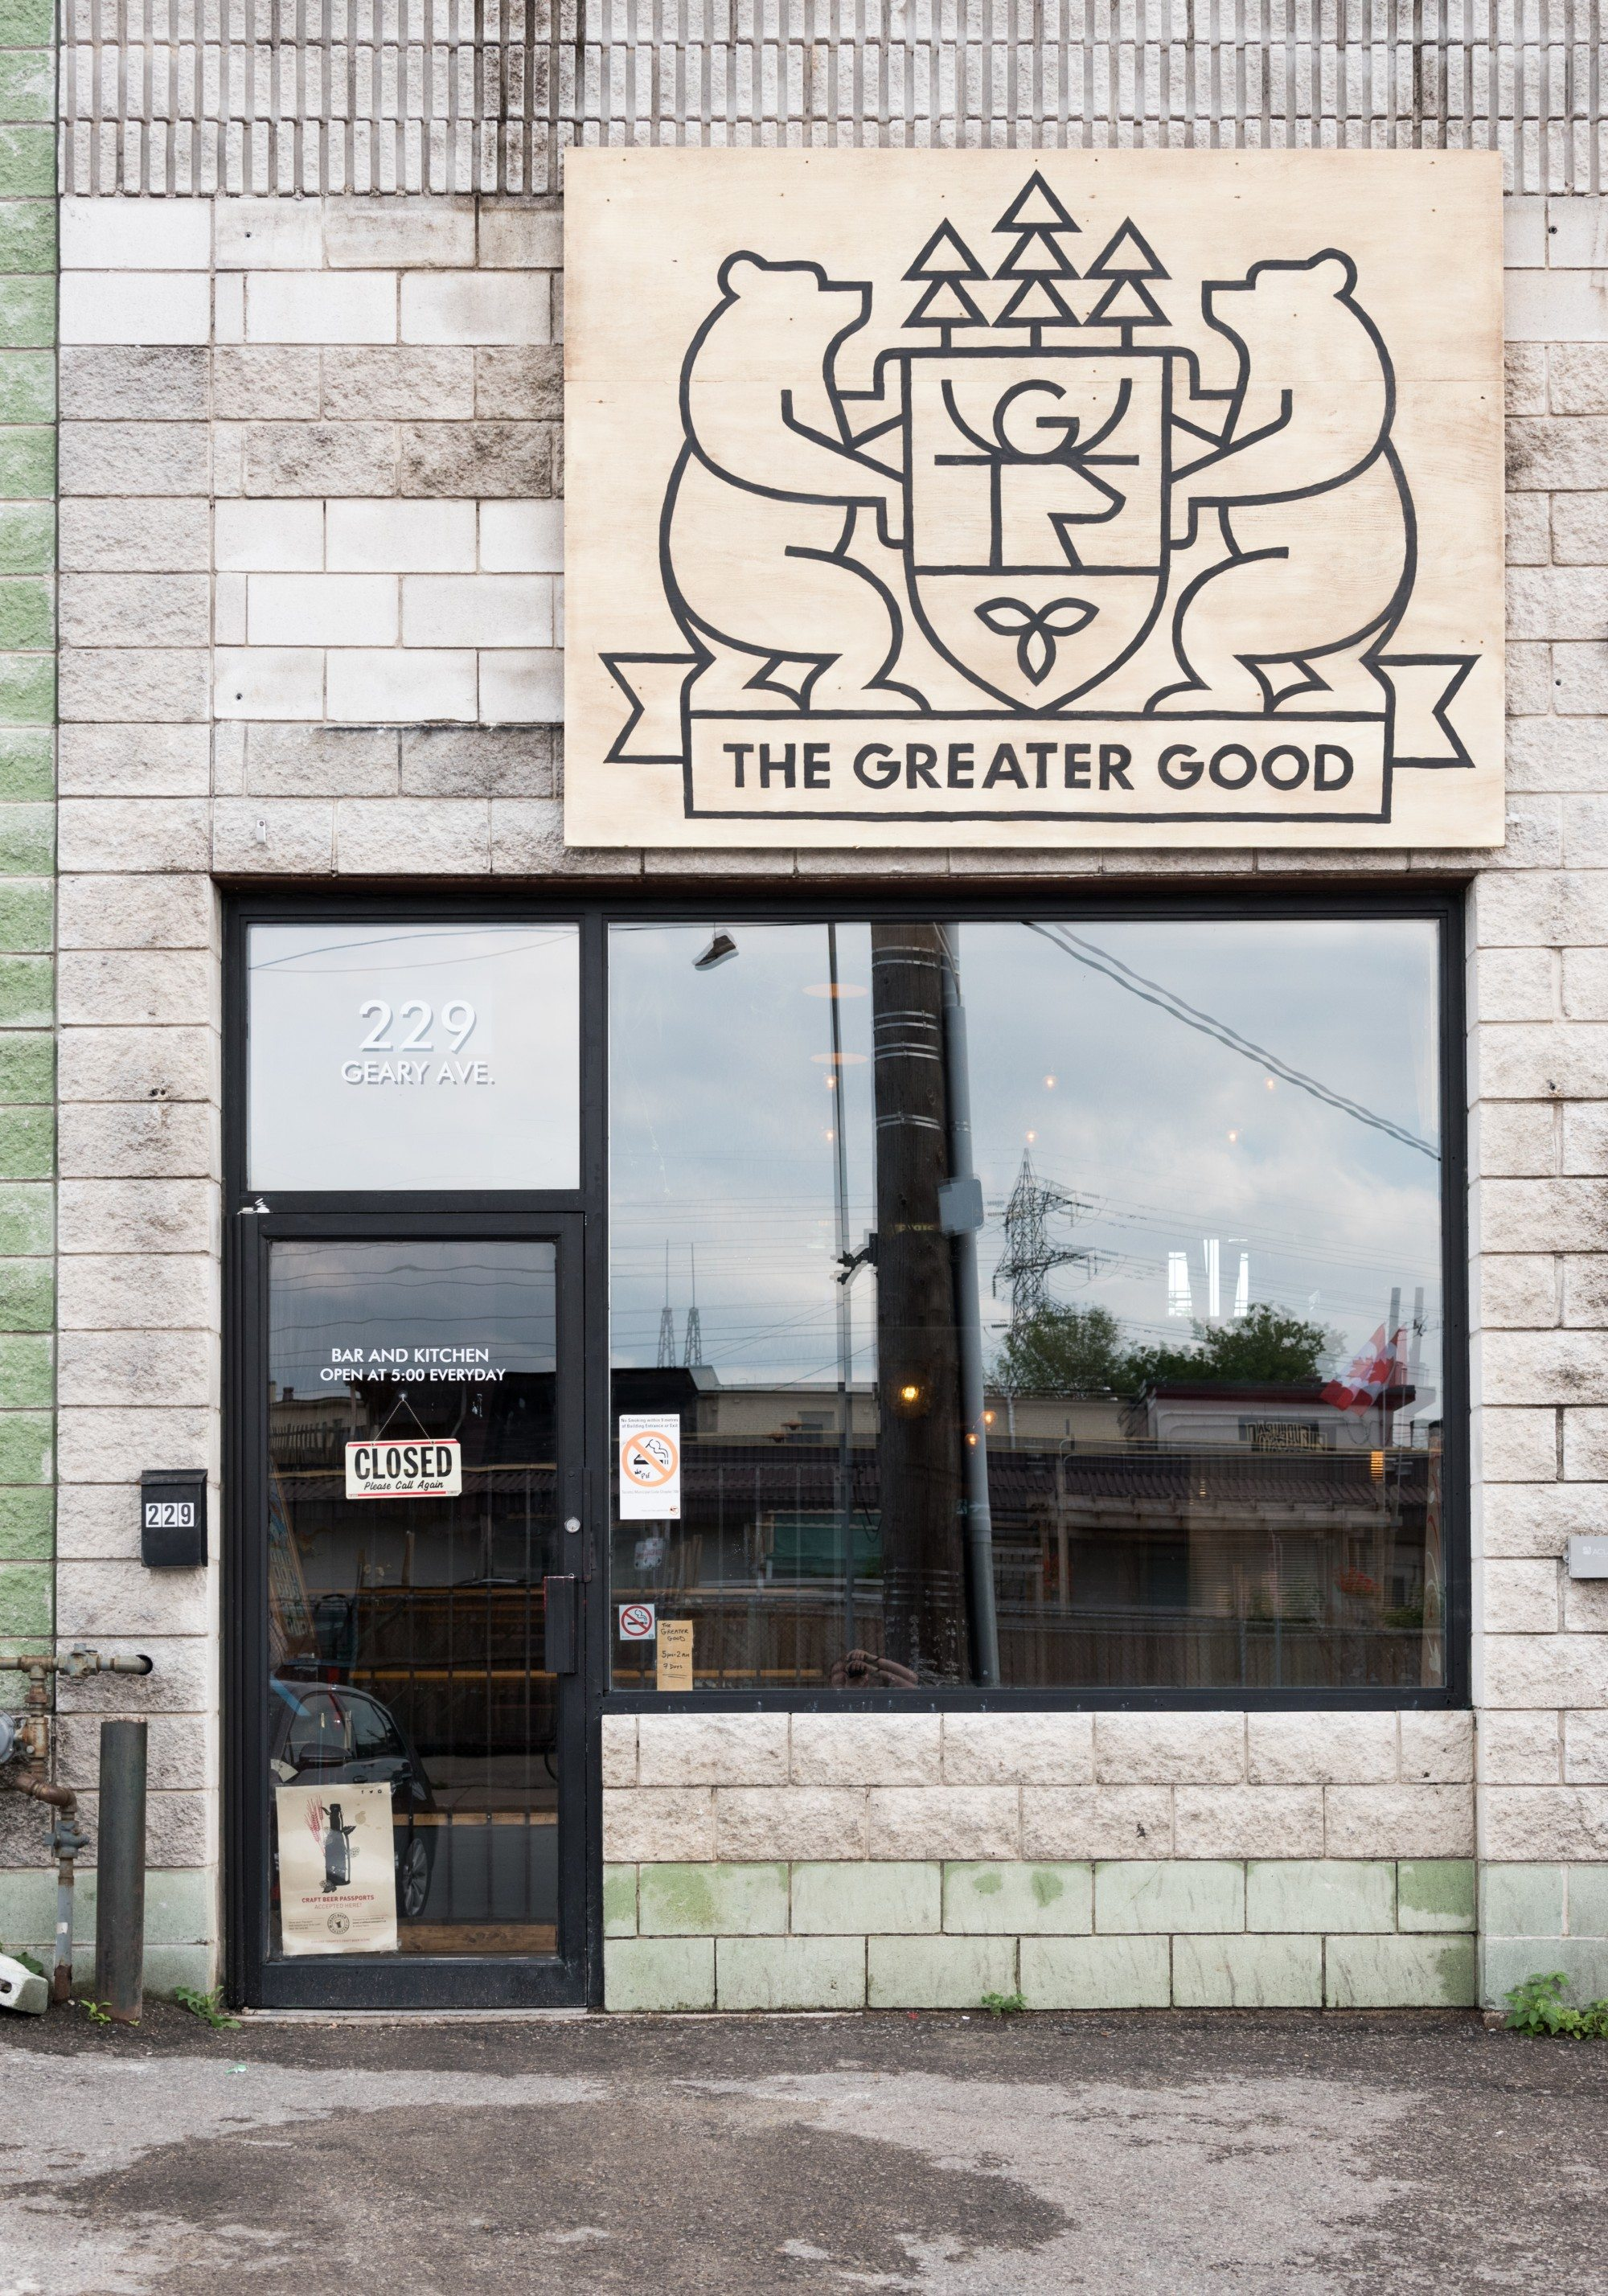 toronto-restaurants-bars-the-greater-good-beer-wallace-emerson-exterior